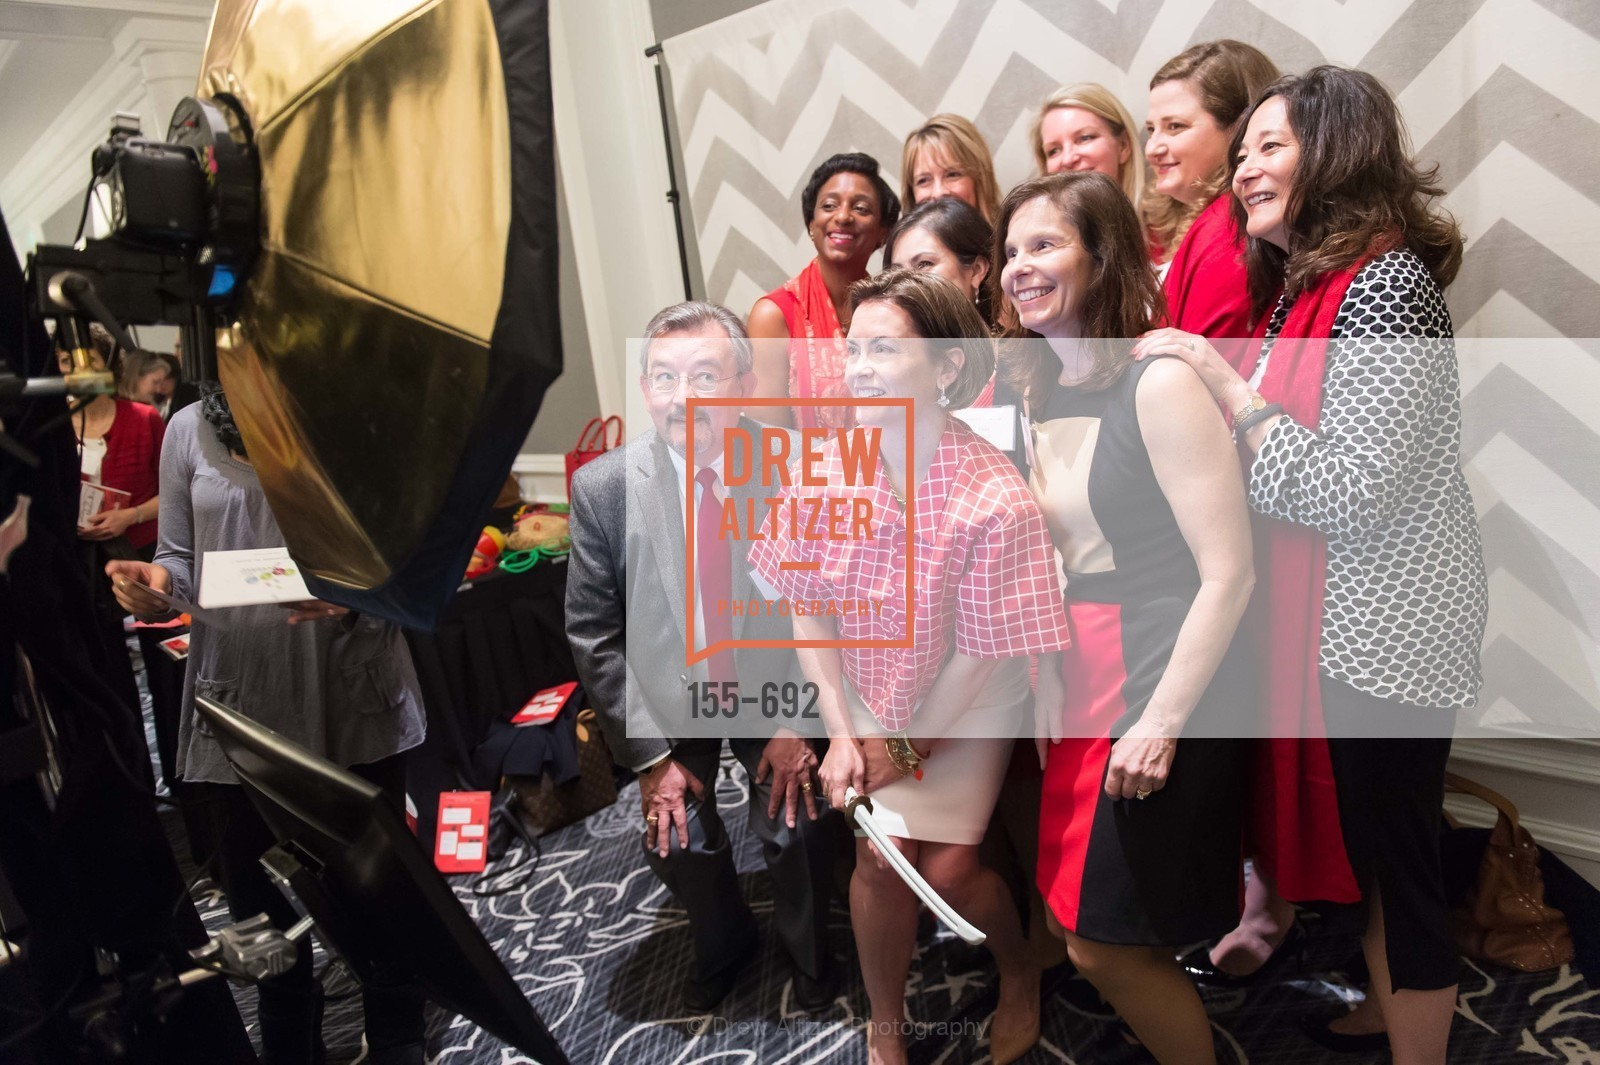 Frank Soler, Mary Francis, 2015 GoRed for Women Luncheon, US, May 1st, 2015,Drew Altizer, Drew Altizer Photography, full-service agency, private events, San Francisco photographer, photographer california